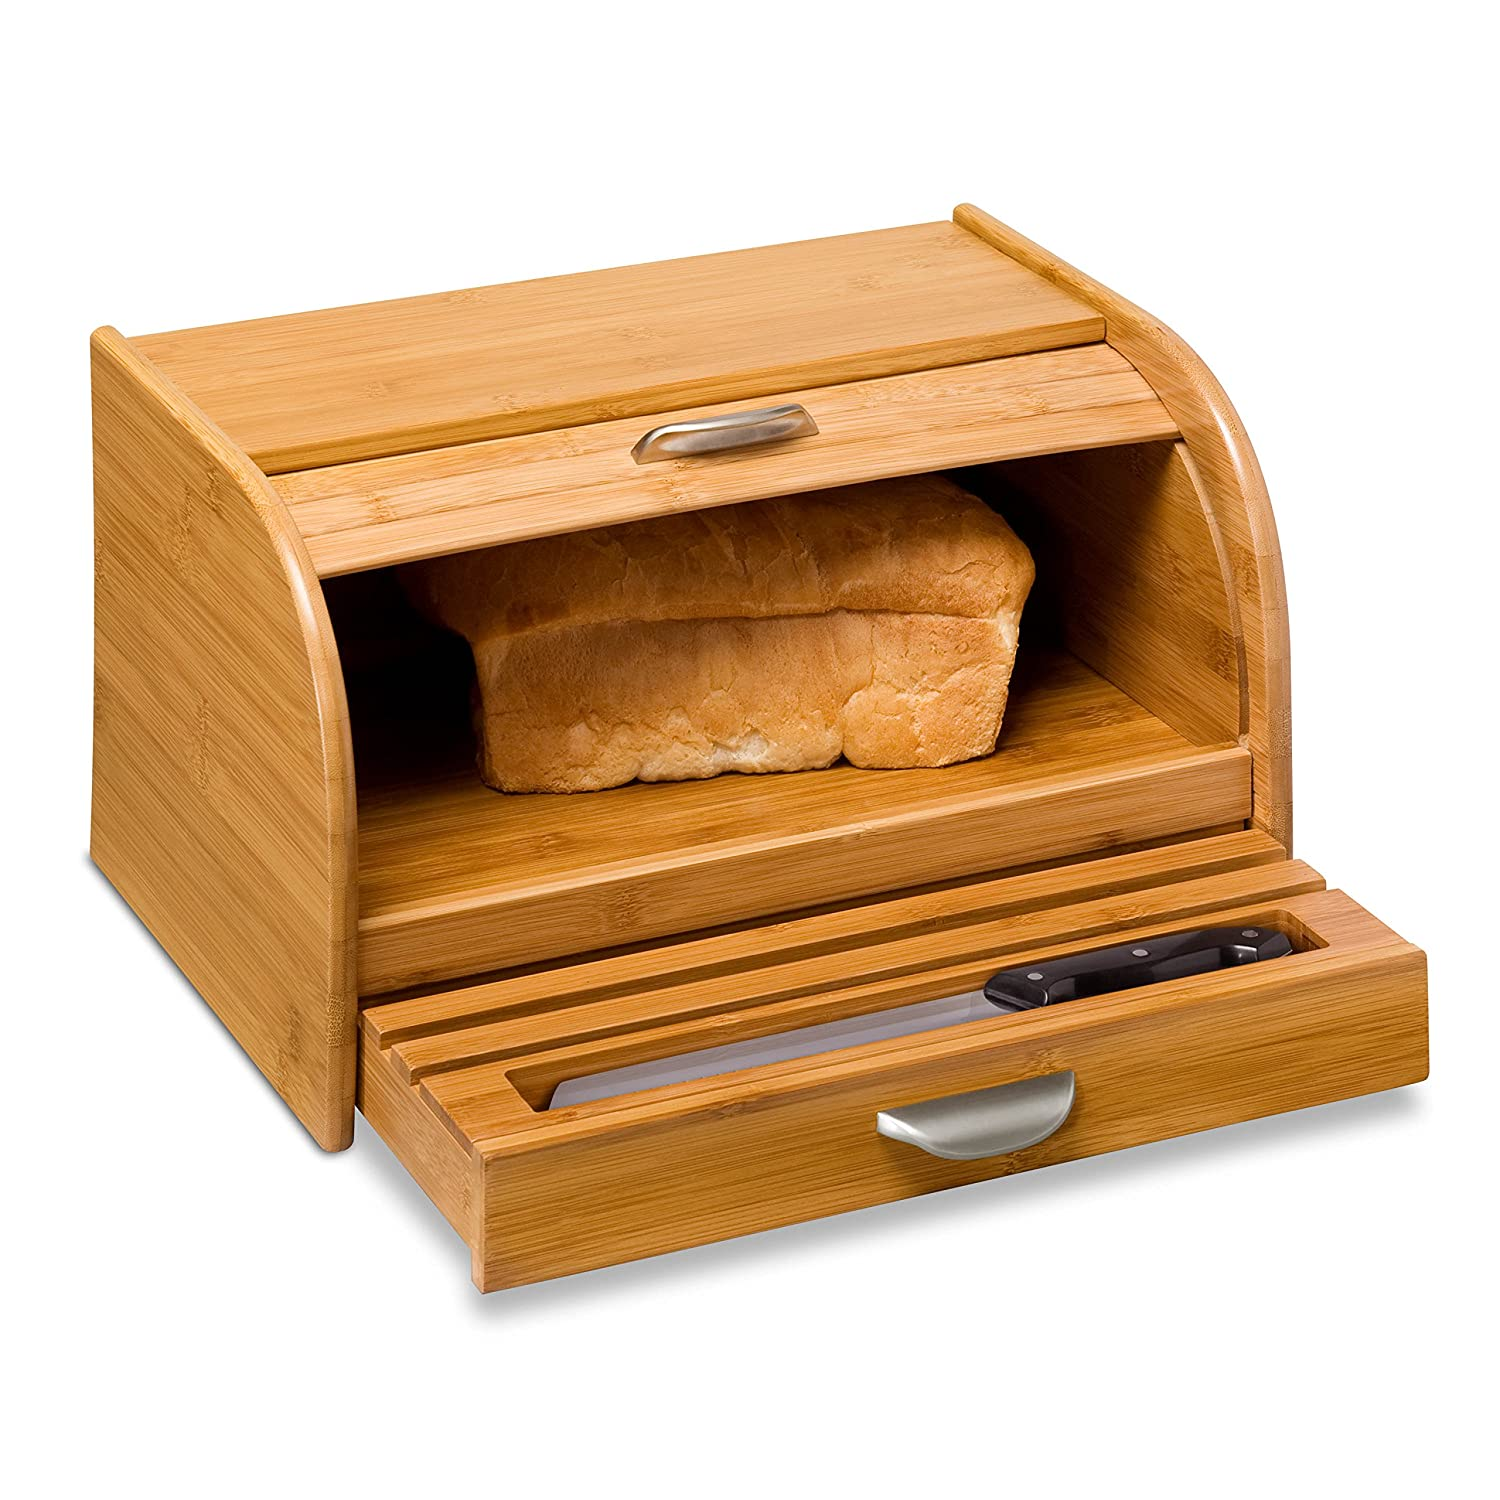 Tin bread box drawer insert - Most Wished For